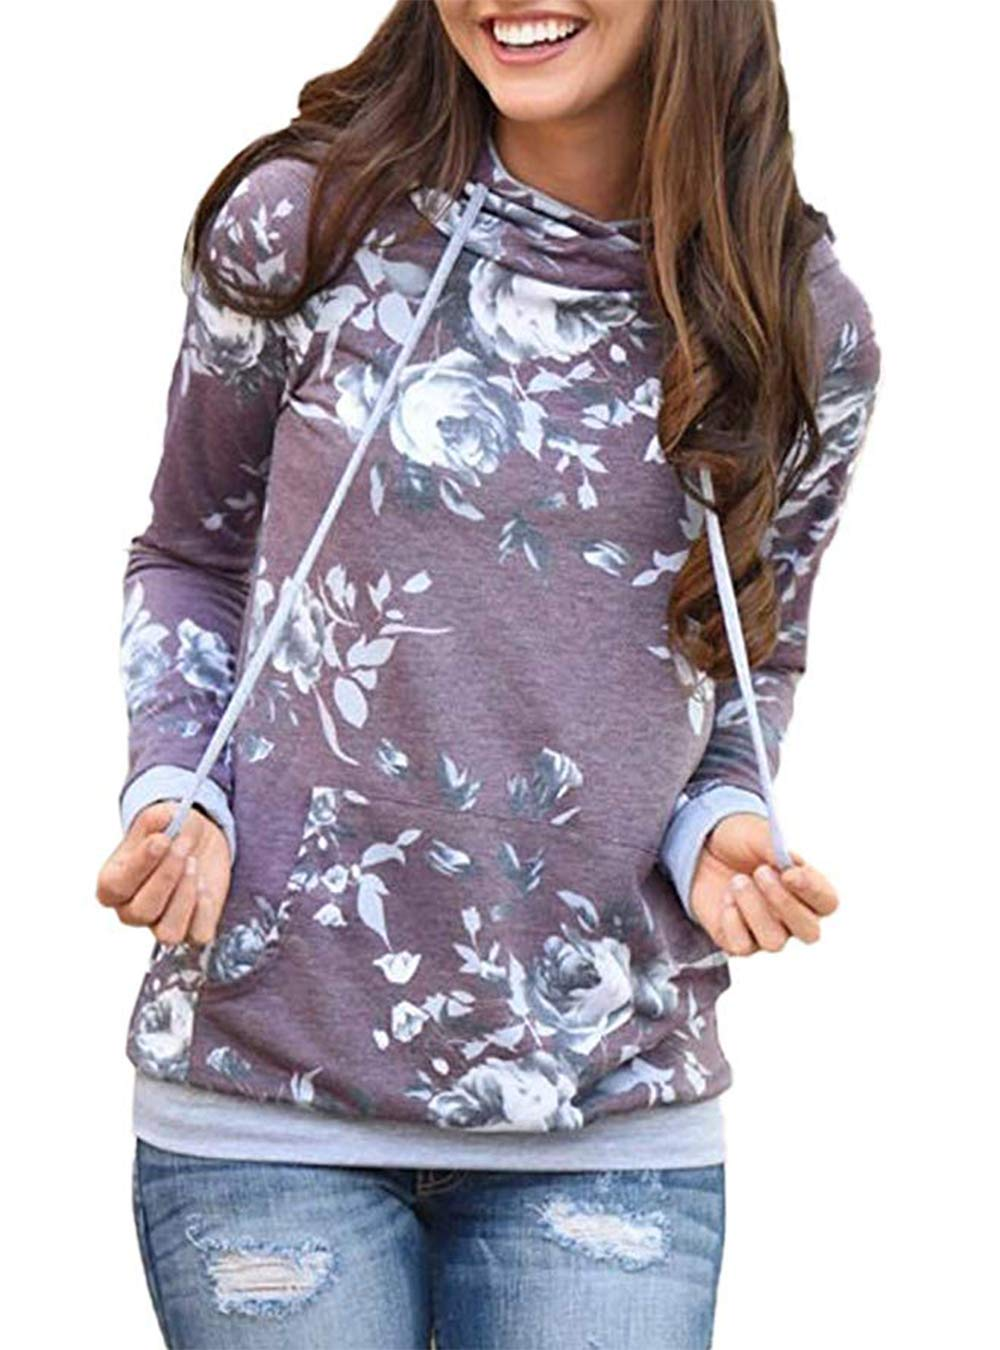 Barlver Women's Casual Hoodies Long Sleeve Sweatshirts Cowl Neck Floral Printed Hooded Pullover Top with Pockets